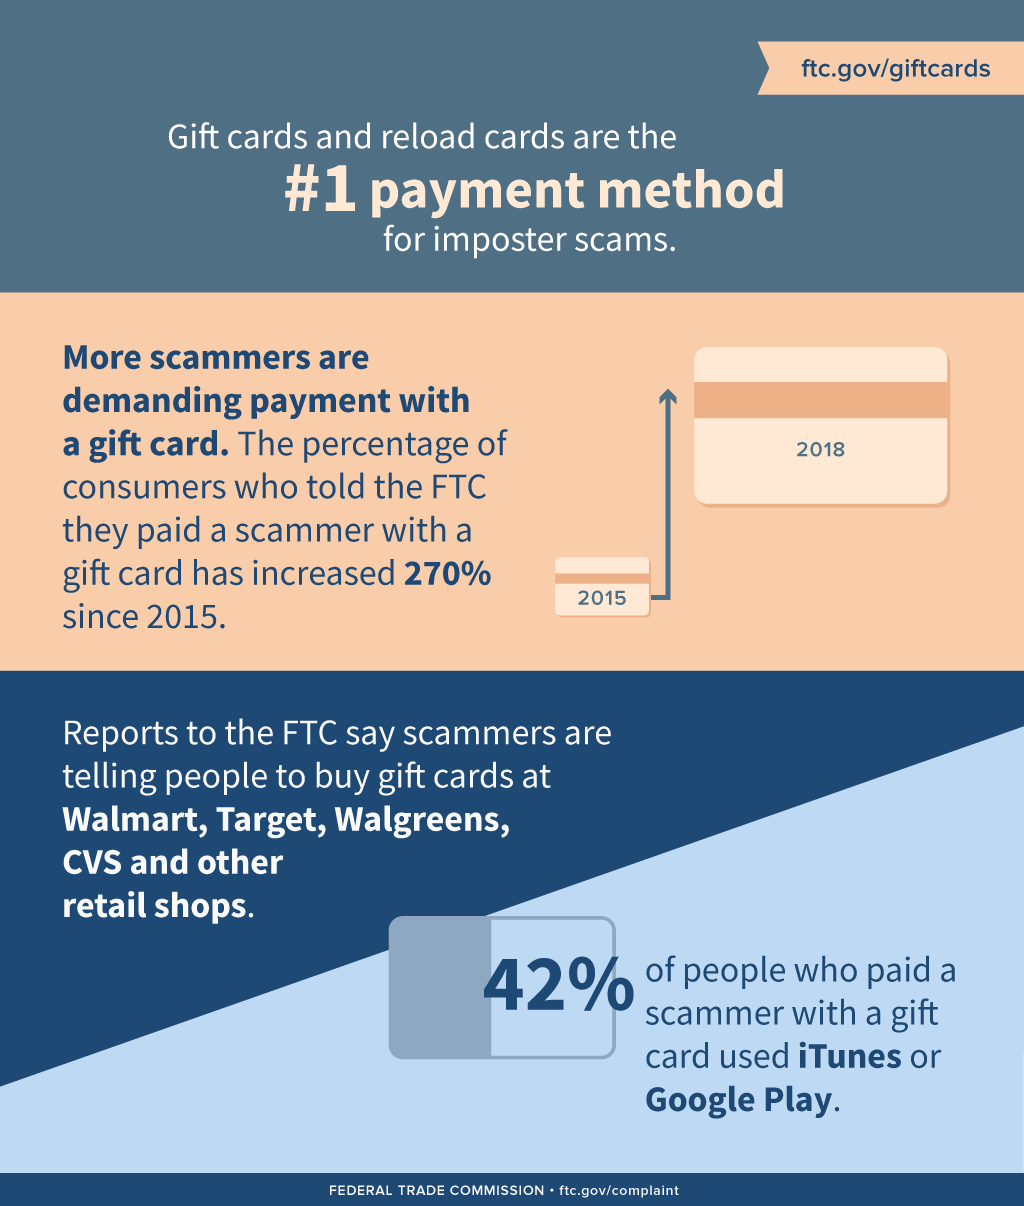 Scammers demand gift cards | Consumer Information